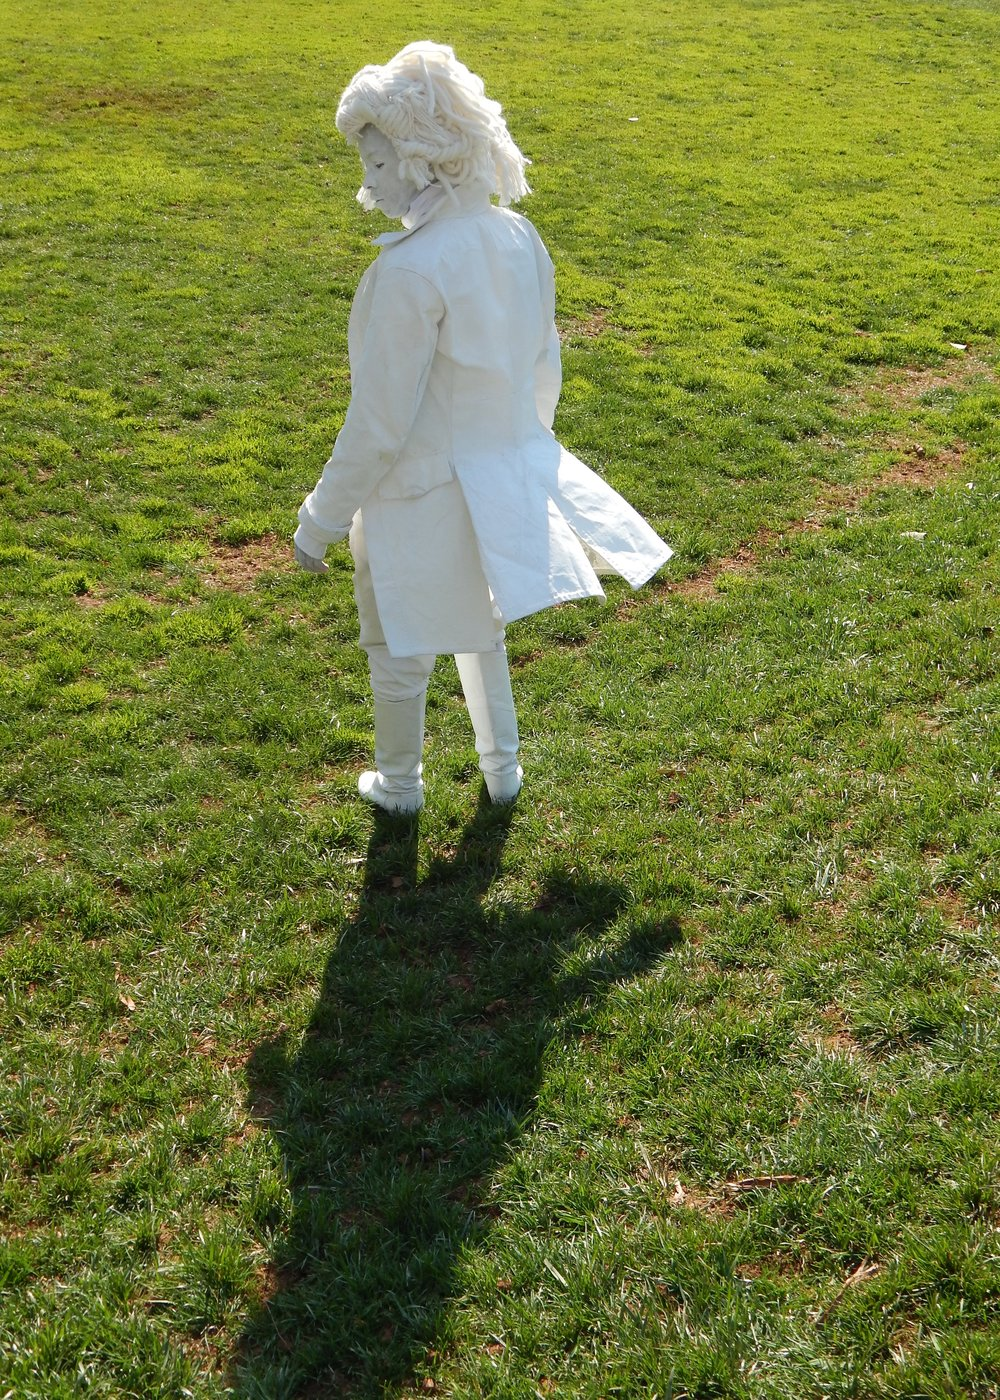 10 The Lawn, University of Virginia -- Even ghosts have their ghosts. A shadow follows The Ghost of Thomas Jefferson. Charlottesville, VA.jpg